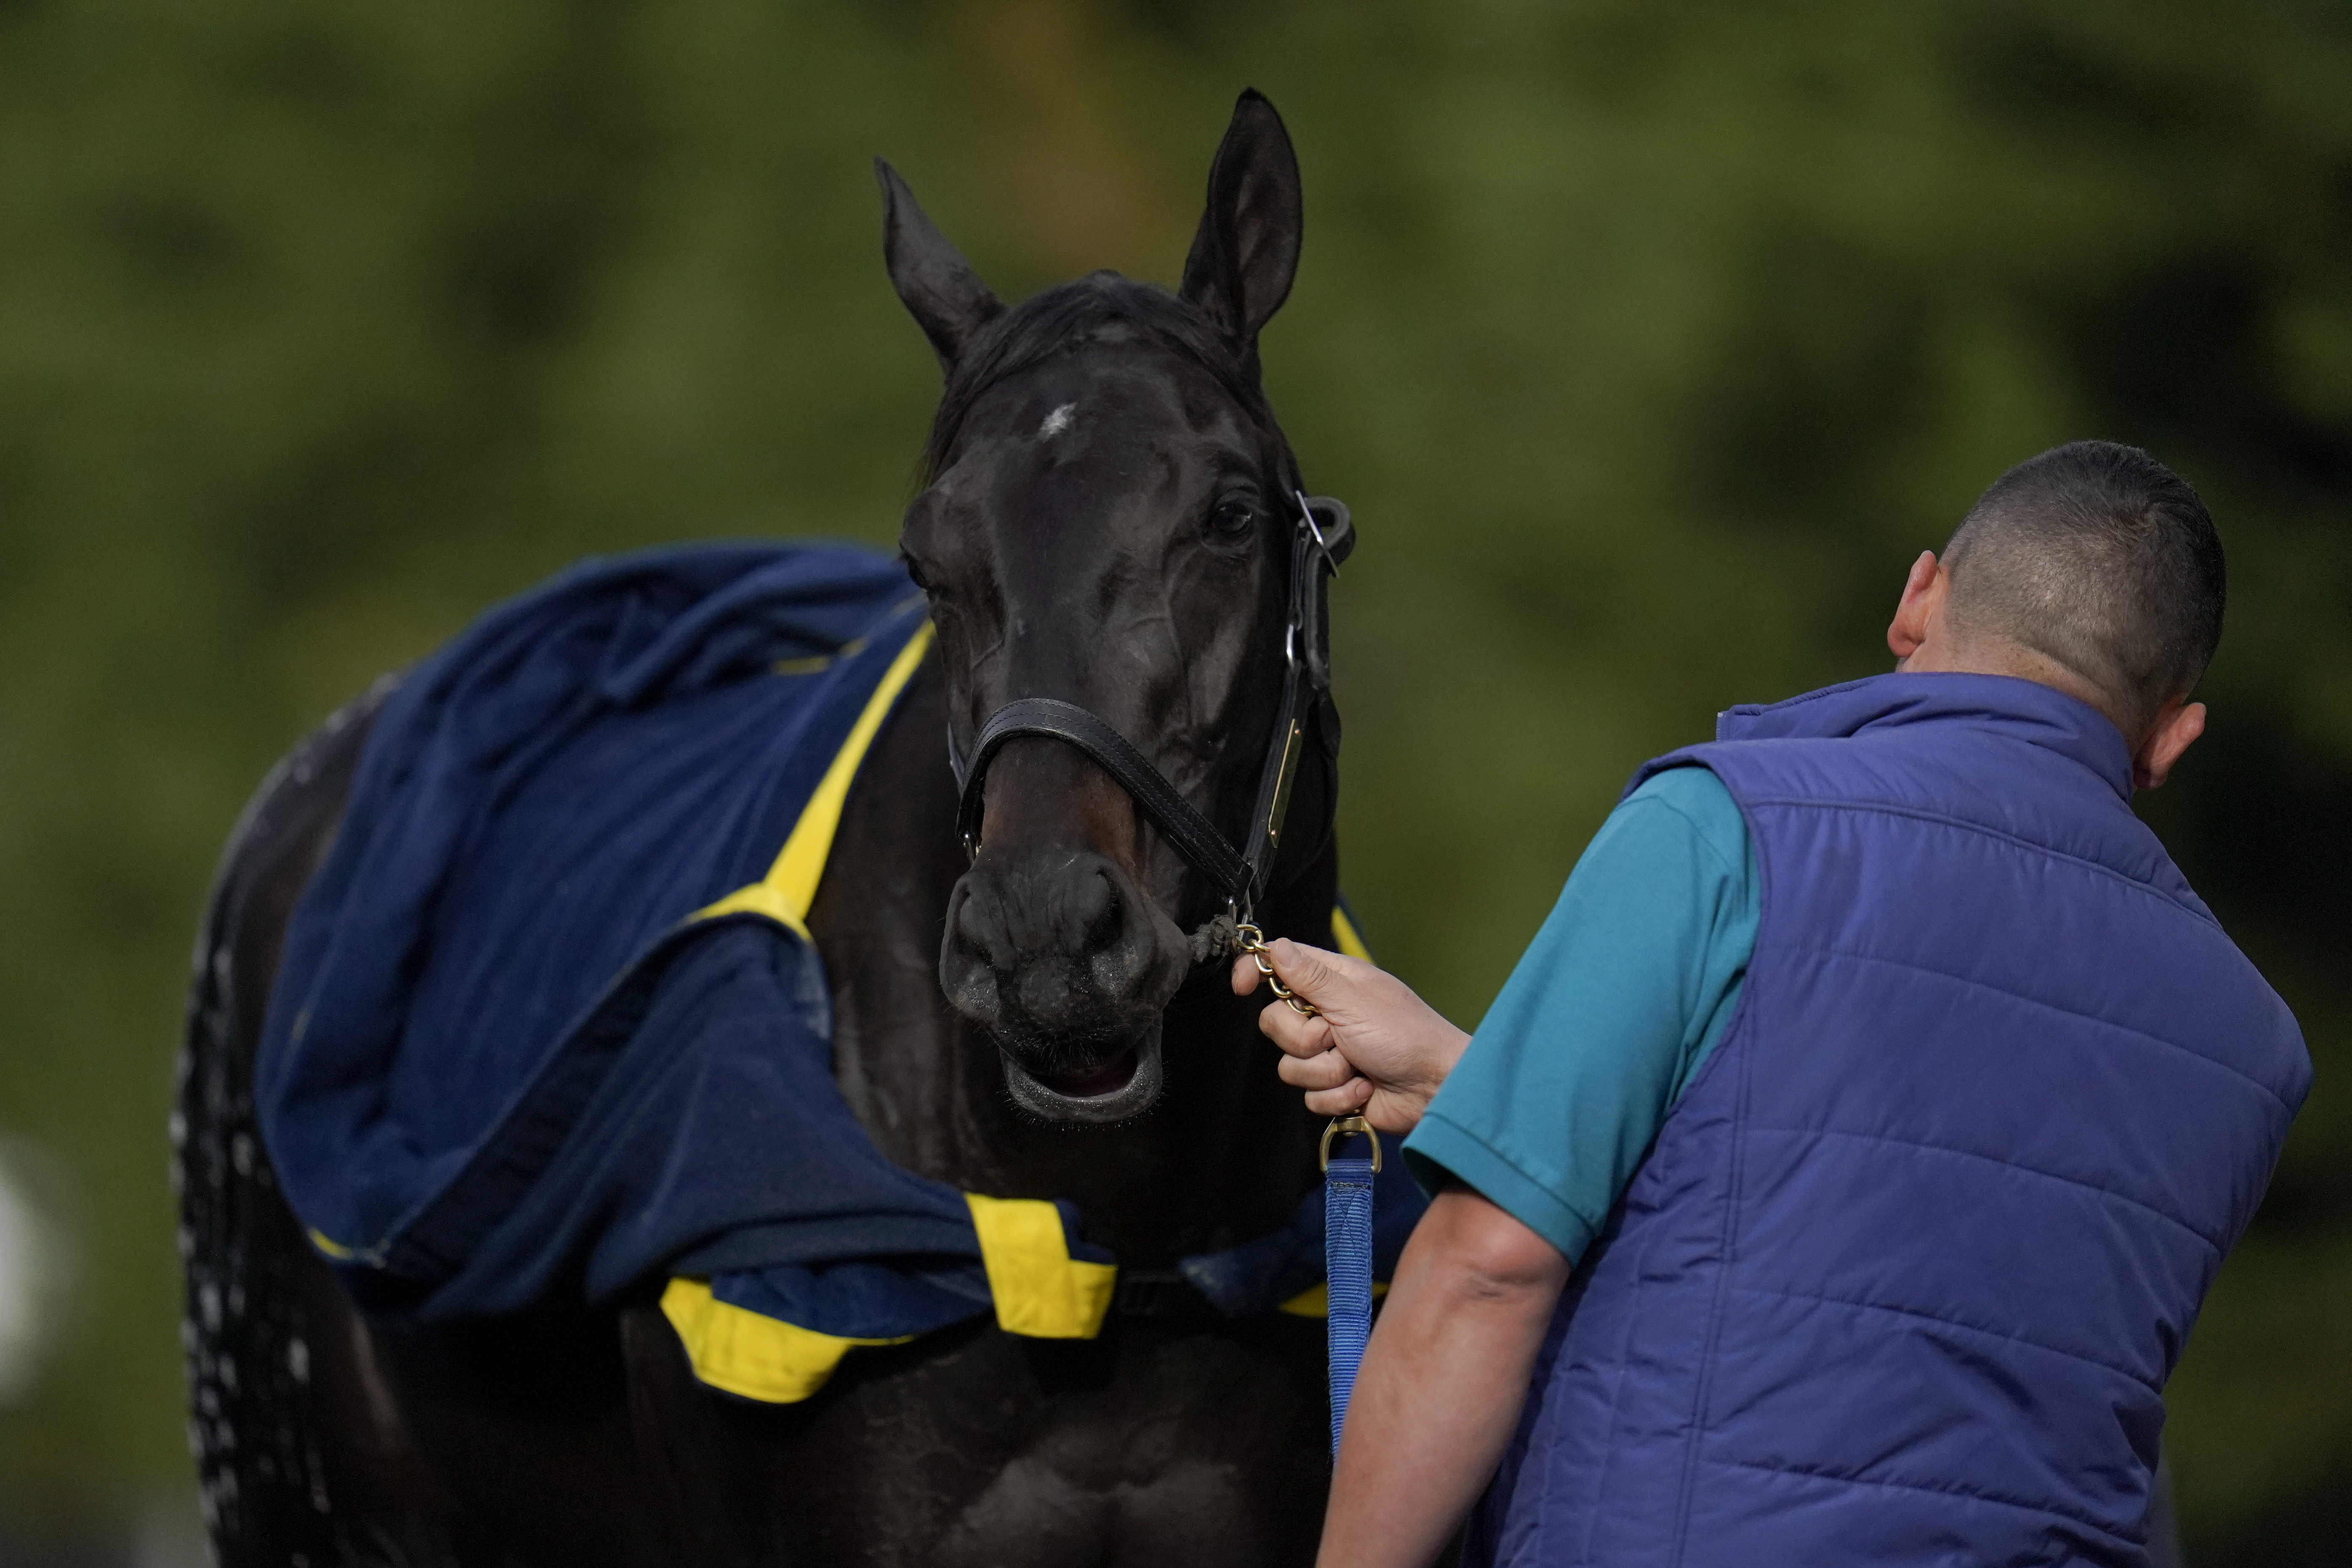 Kentucky Derby winner and Preakness entrant Medina Spirit passed all drug tests and will be allowed to run in the second jewel of the Triple Crown.